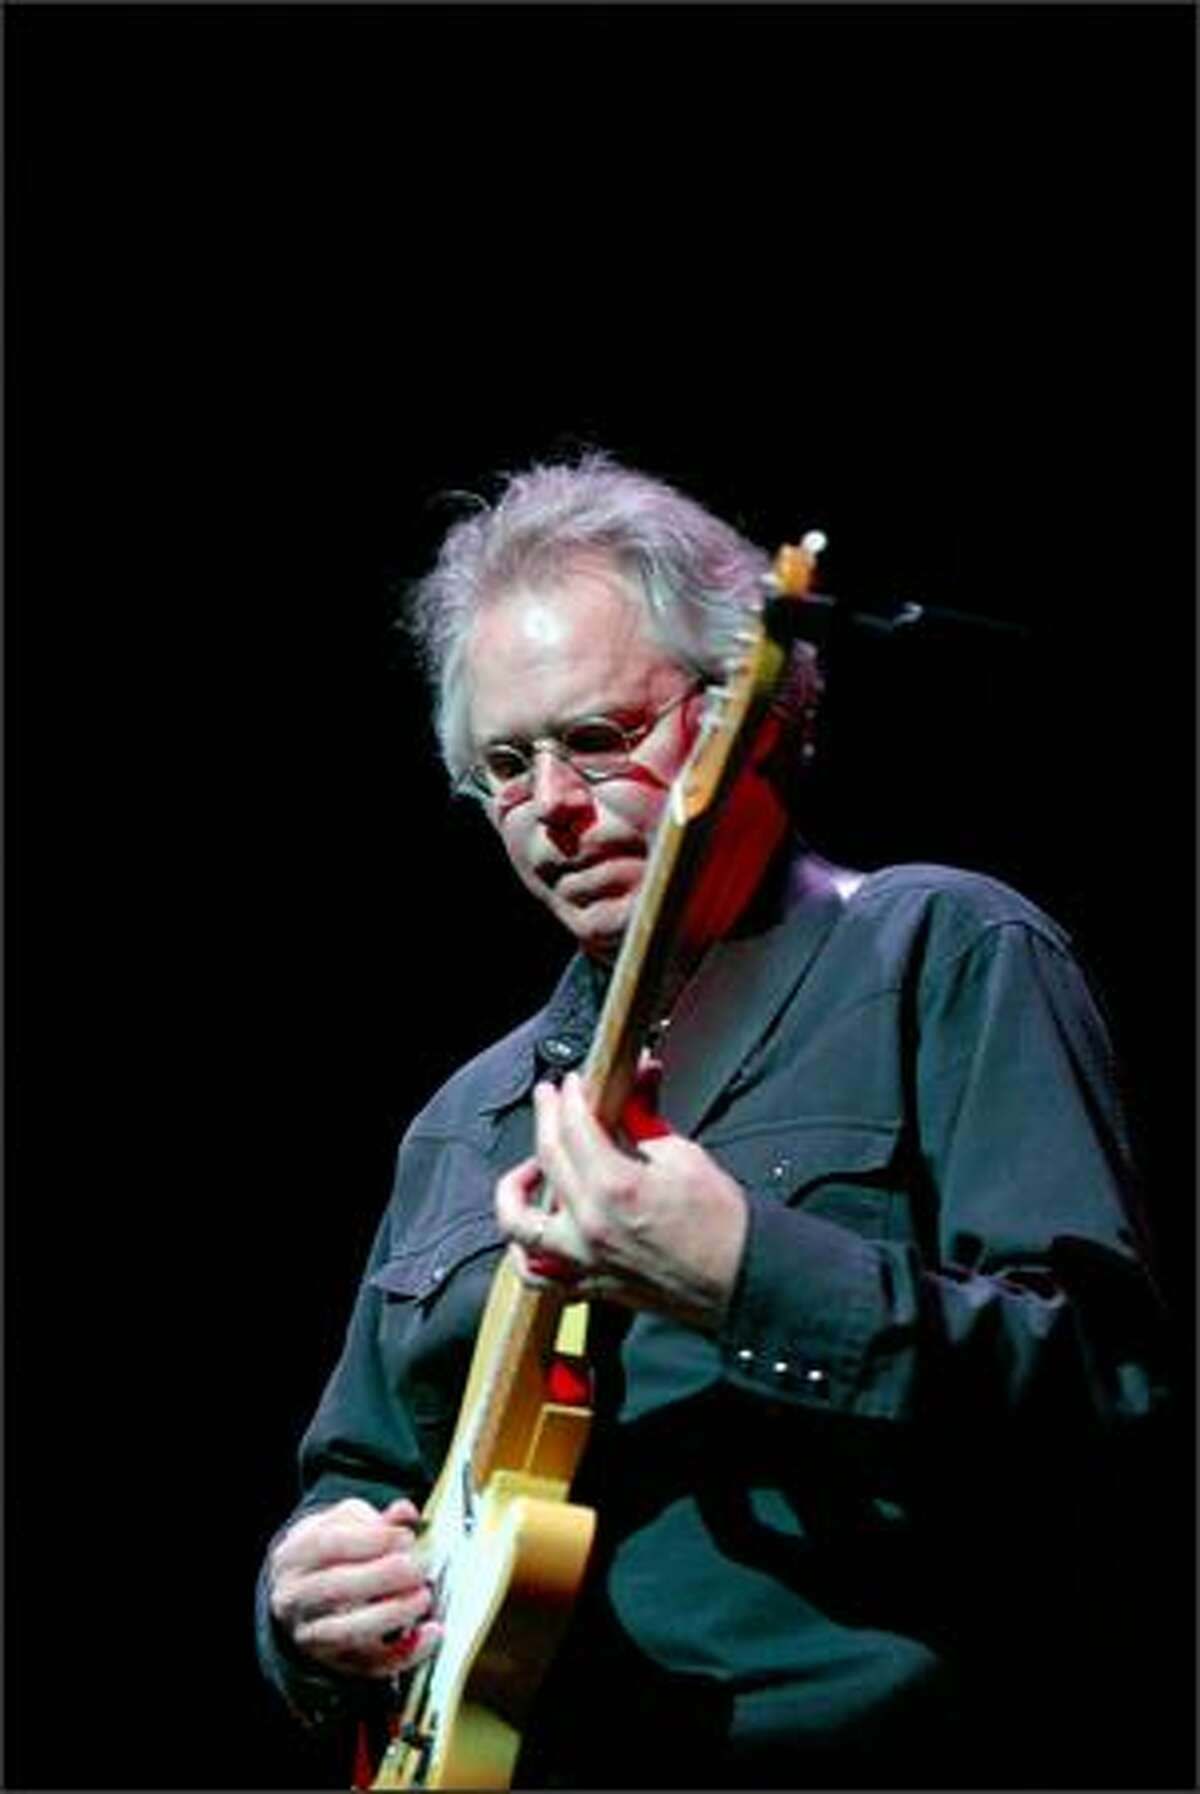 Bill Frisell opened Friday night's show.